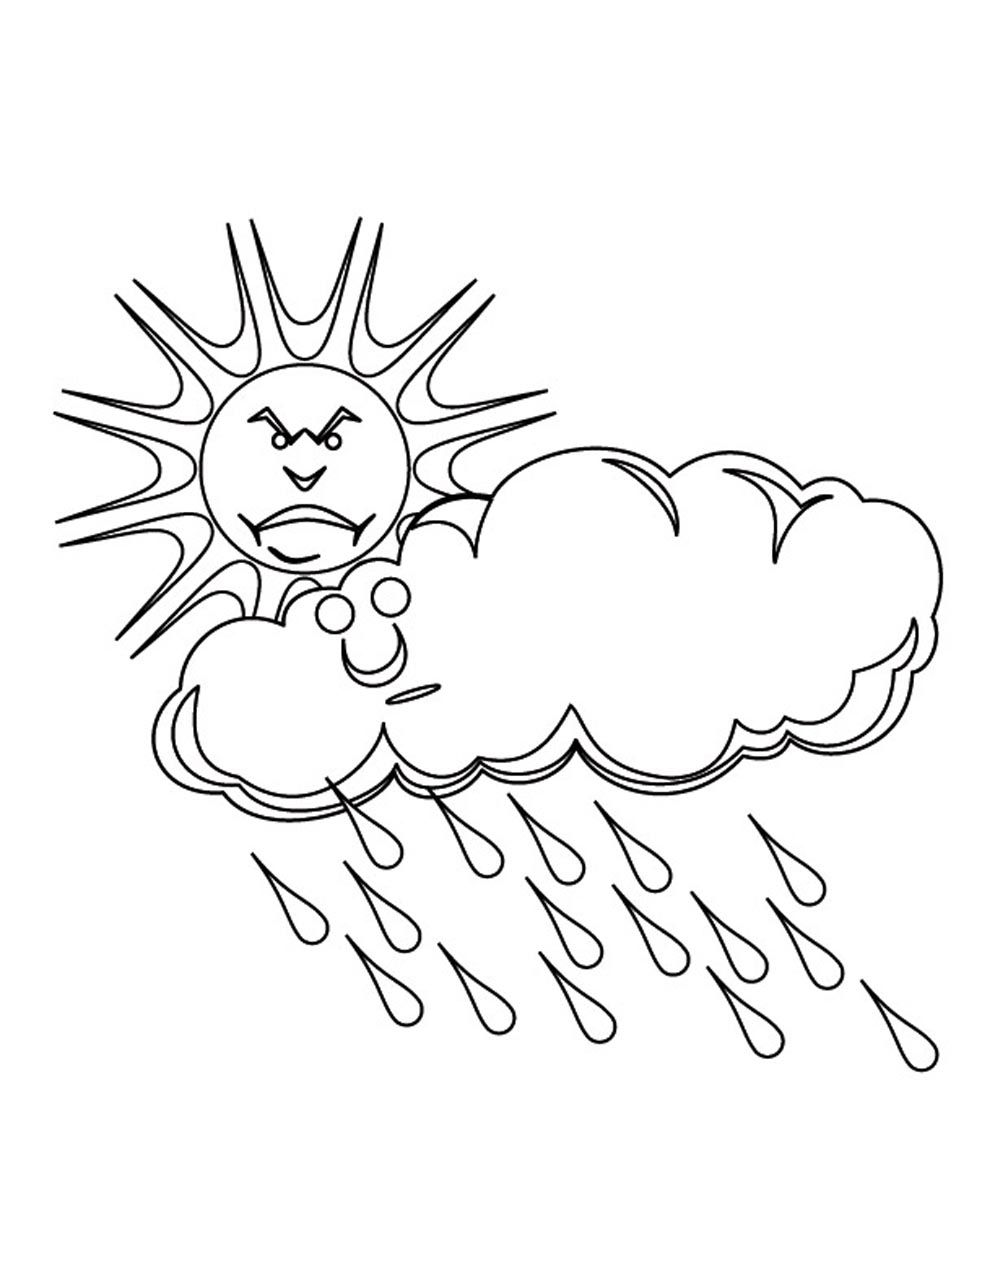 cloud coloring page. night cloud coloring page. coloring page cloud ...